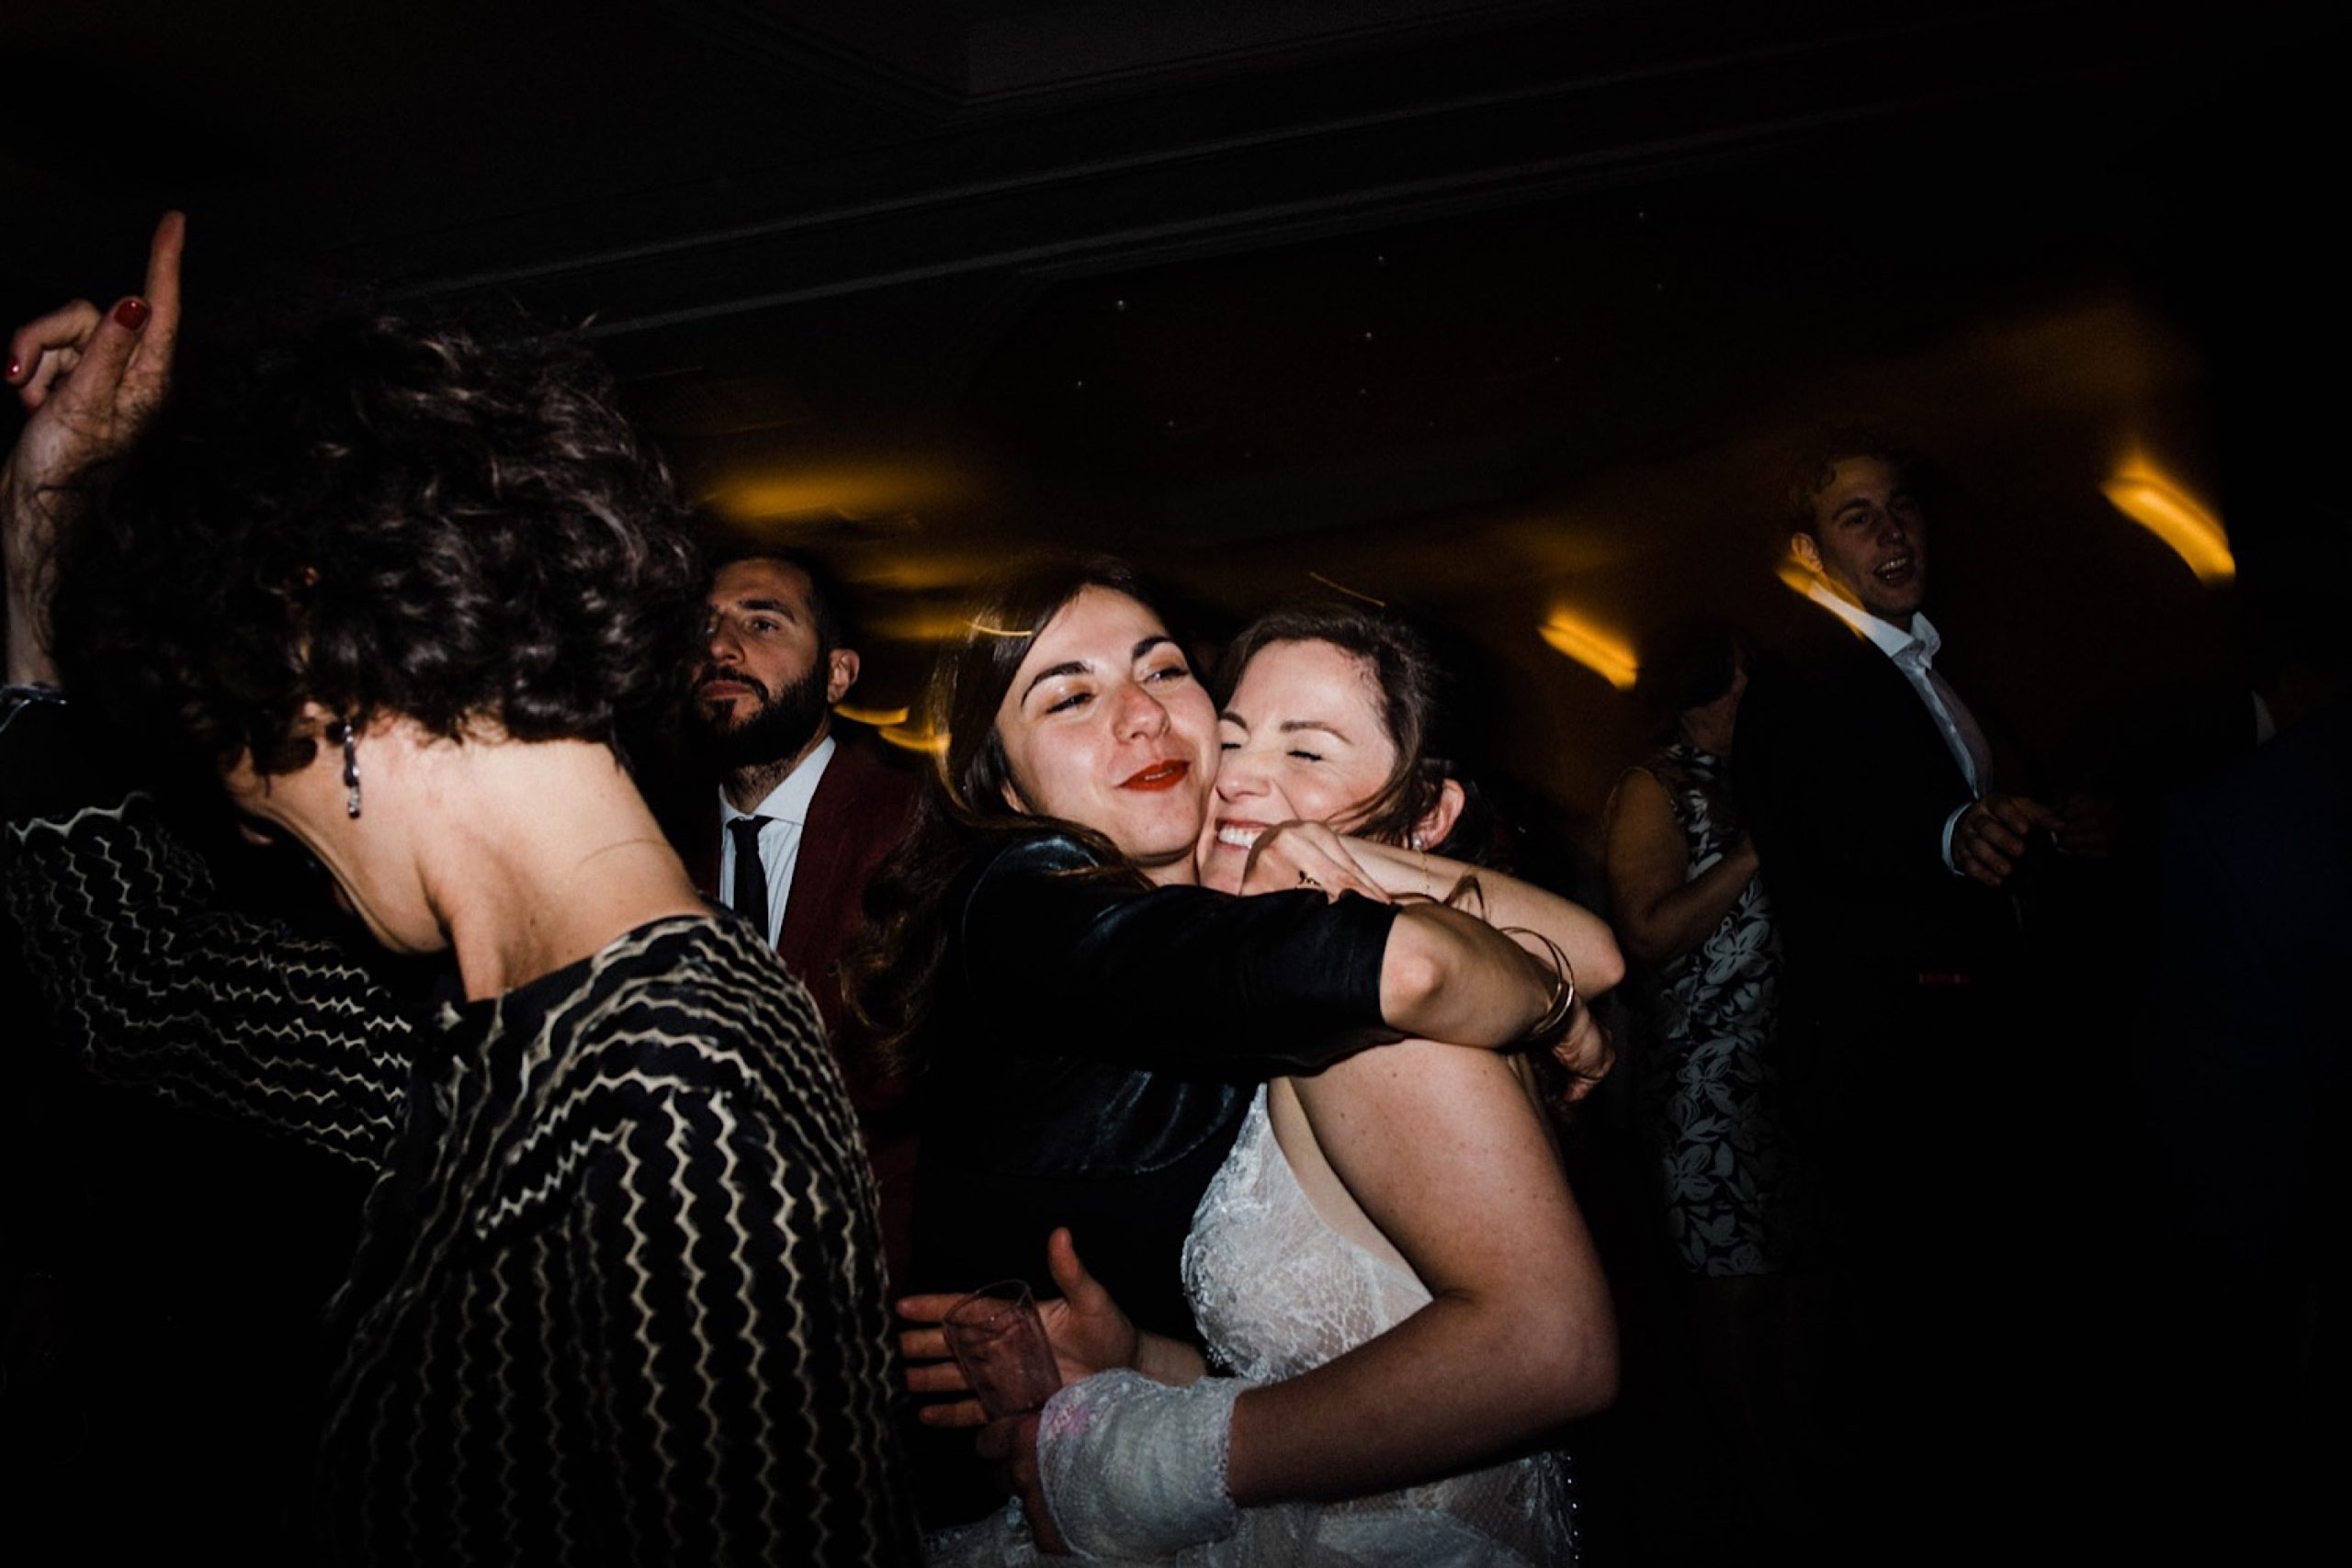 Candid Wedding Photography of a guest hugging the bride on the dance floor.